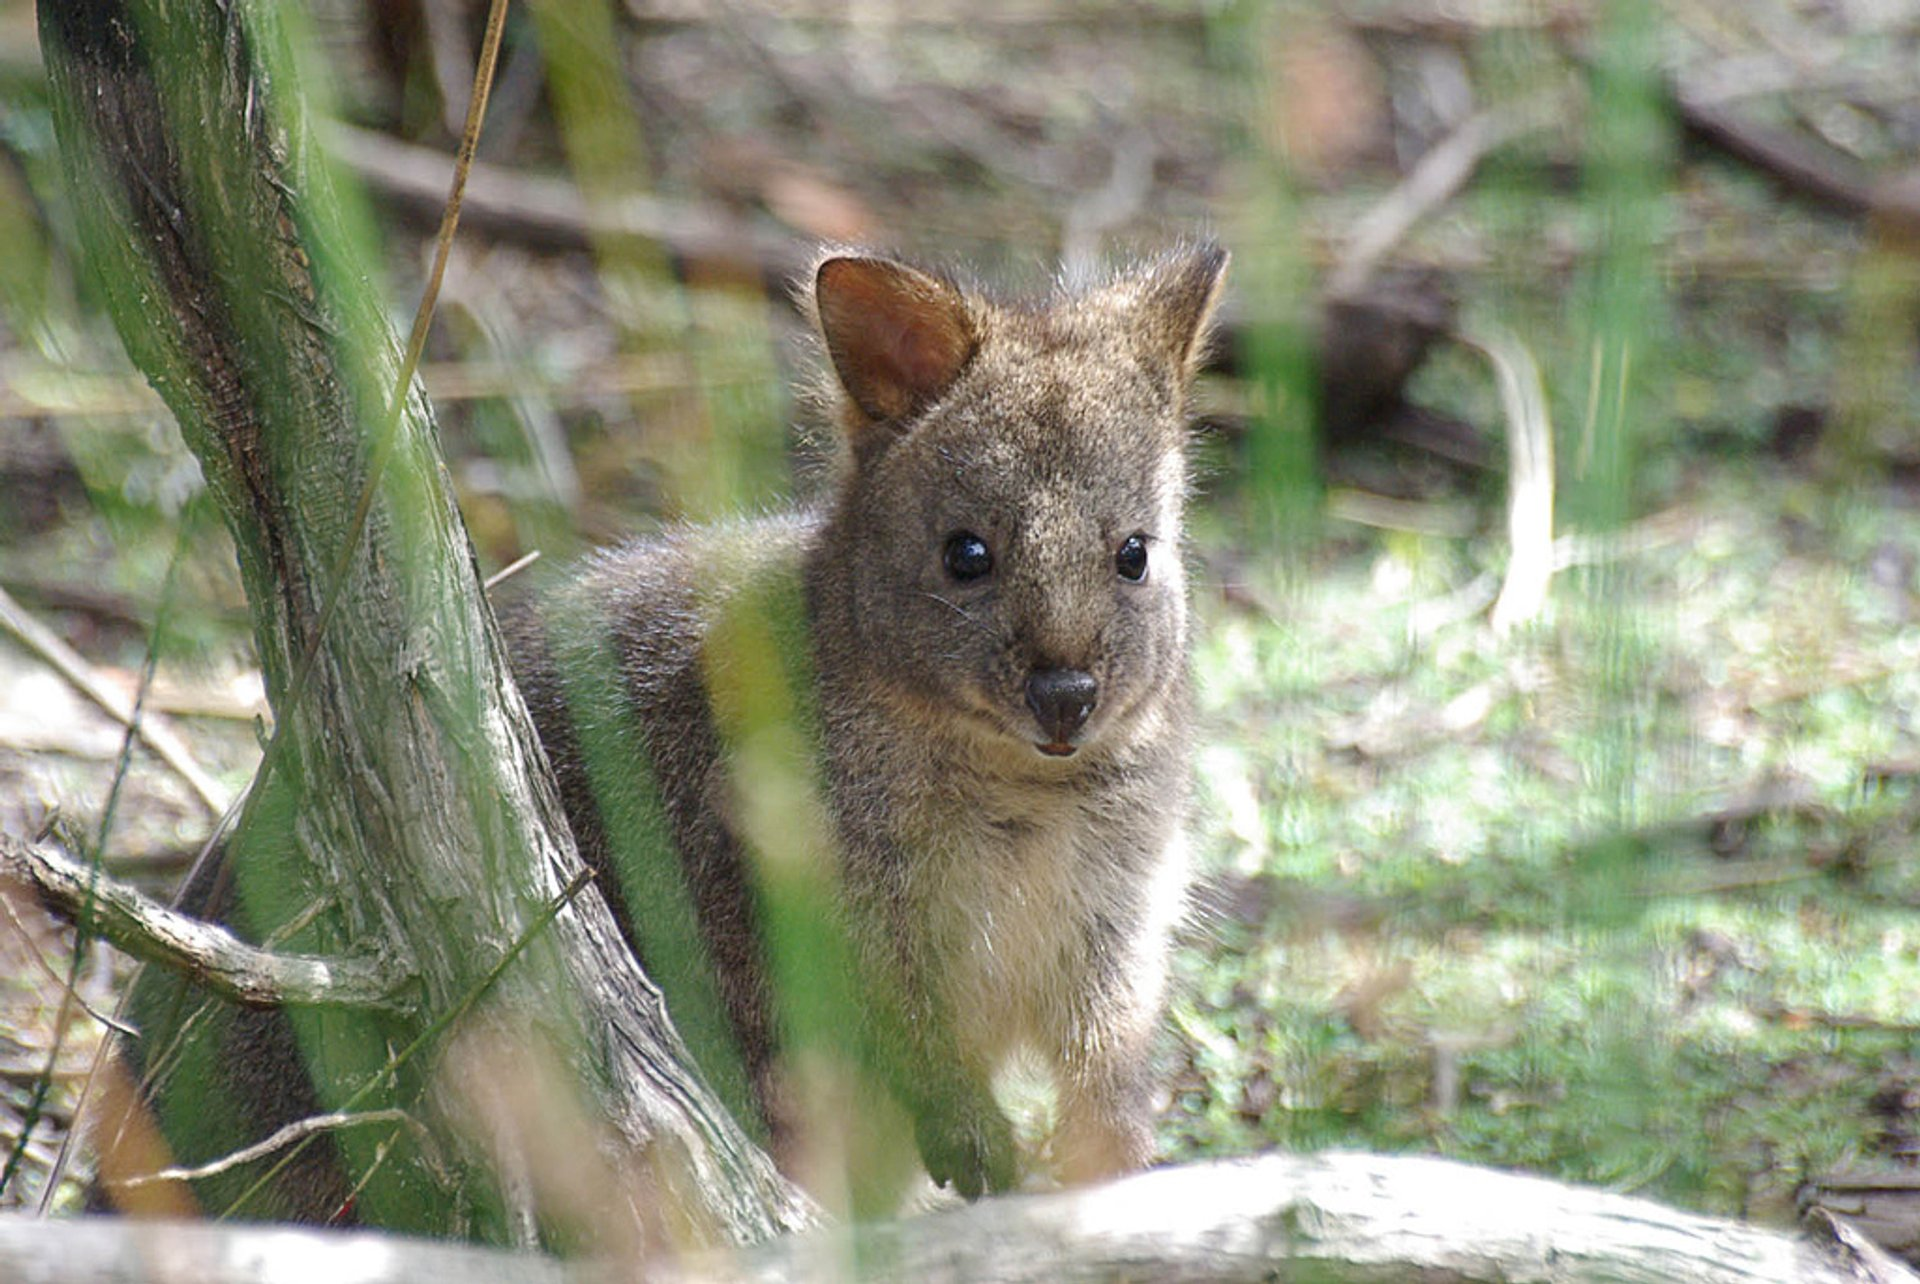 Wallaby by the pond after the rain, Colebrook, Tasmania, Australia 2020